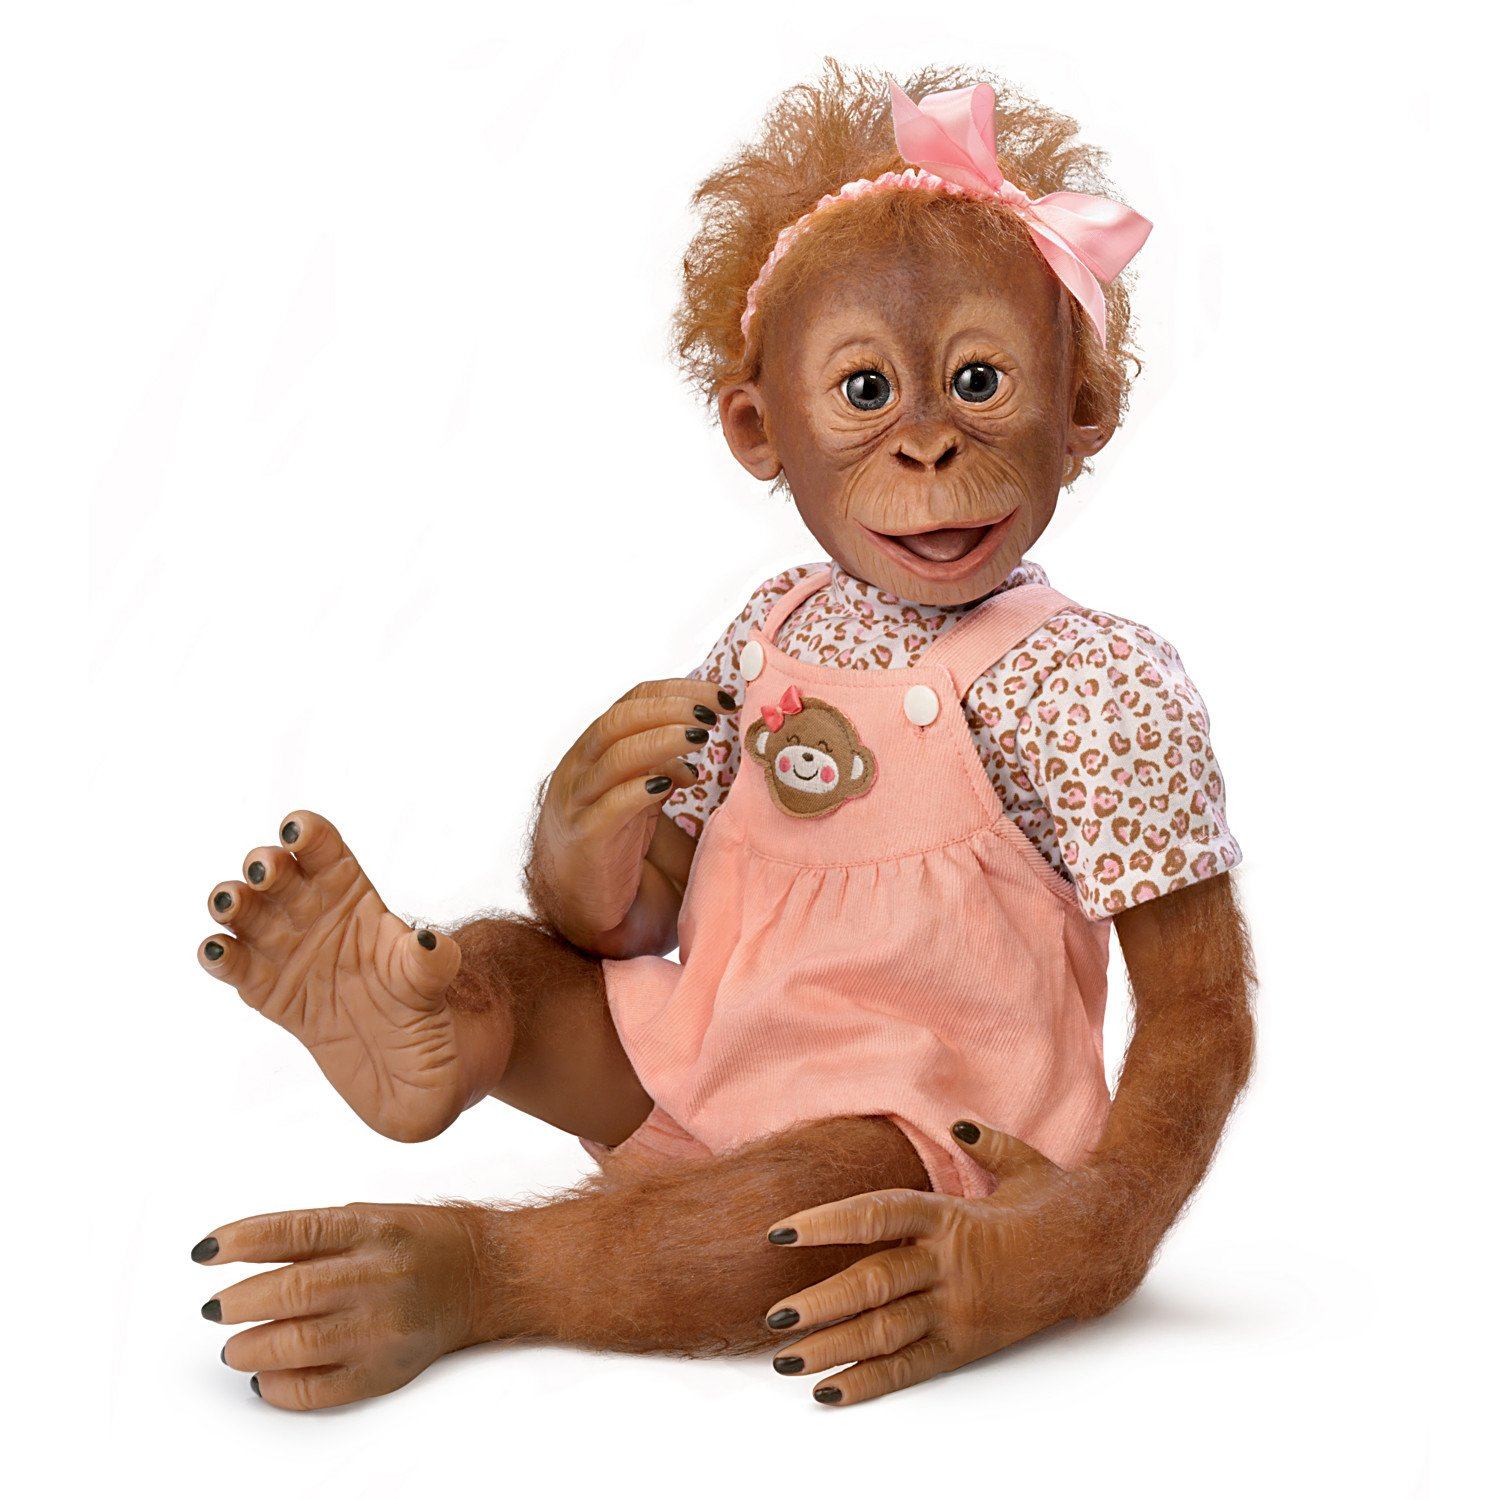 Realistic Baby Monkey Doll by Ina Volprich Holds Every Pose by The Ashton-Drake Galleries